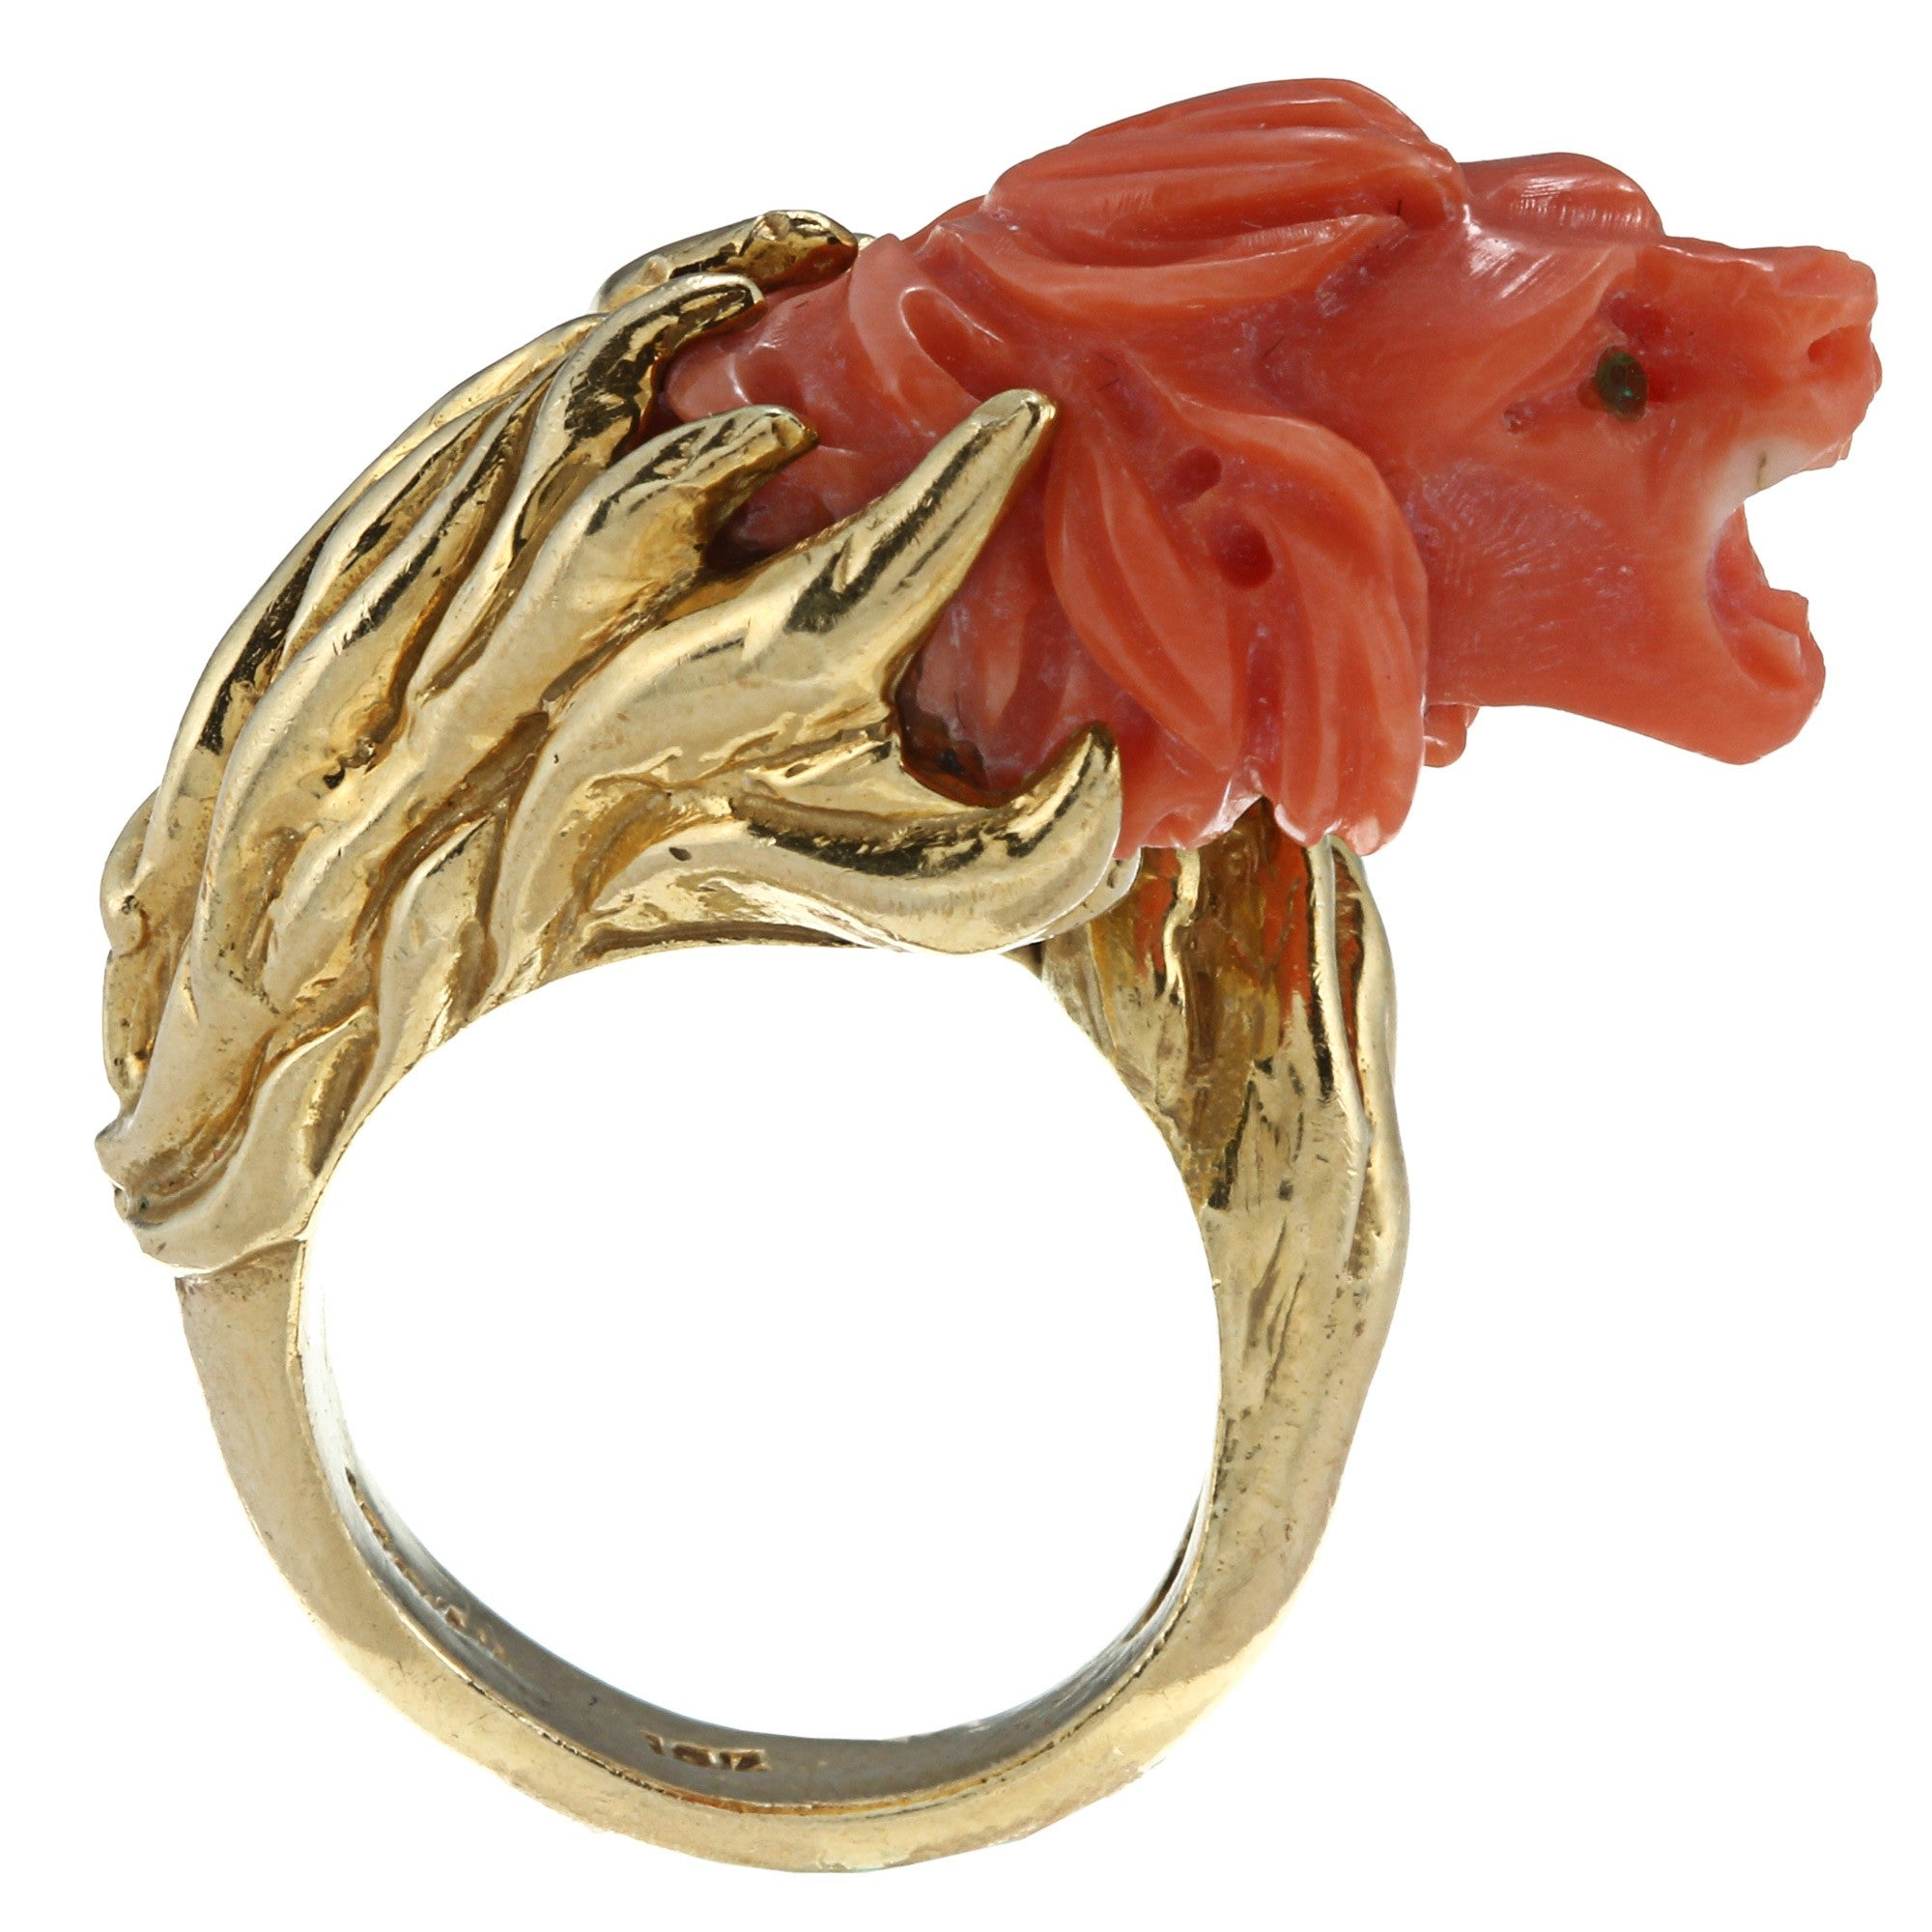 sexta and img feira copper coral jewelry rings cuff